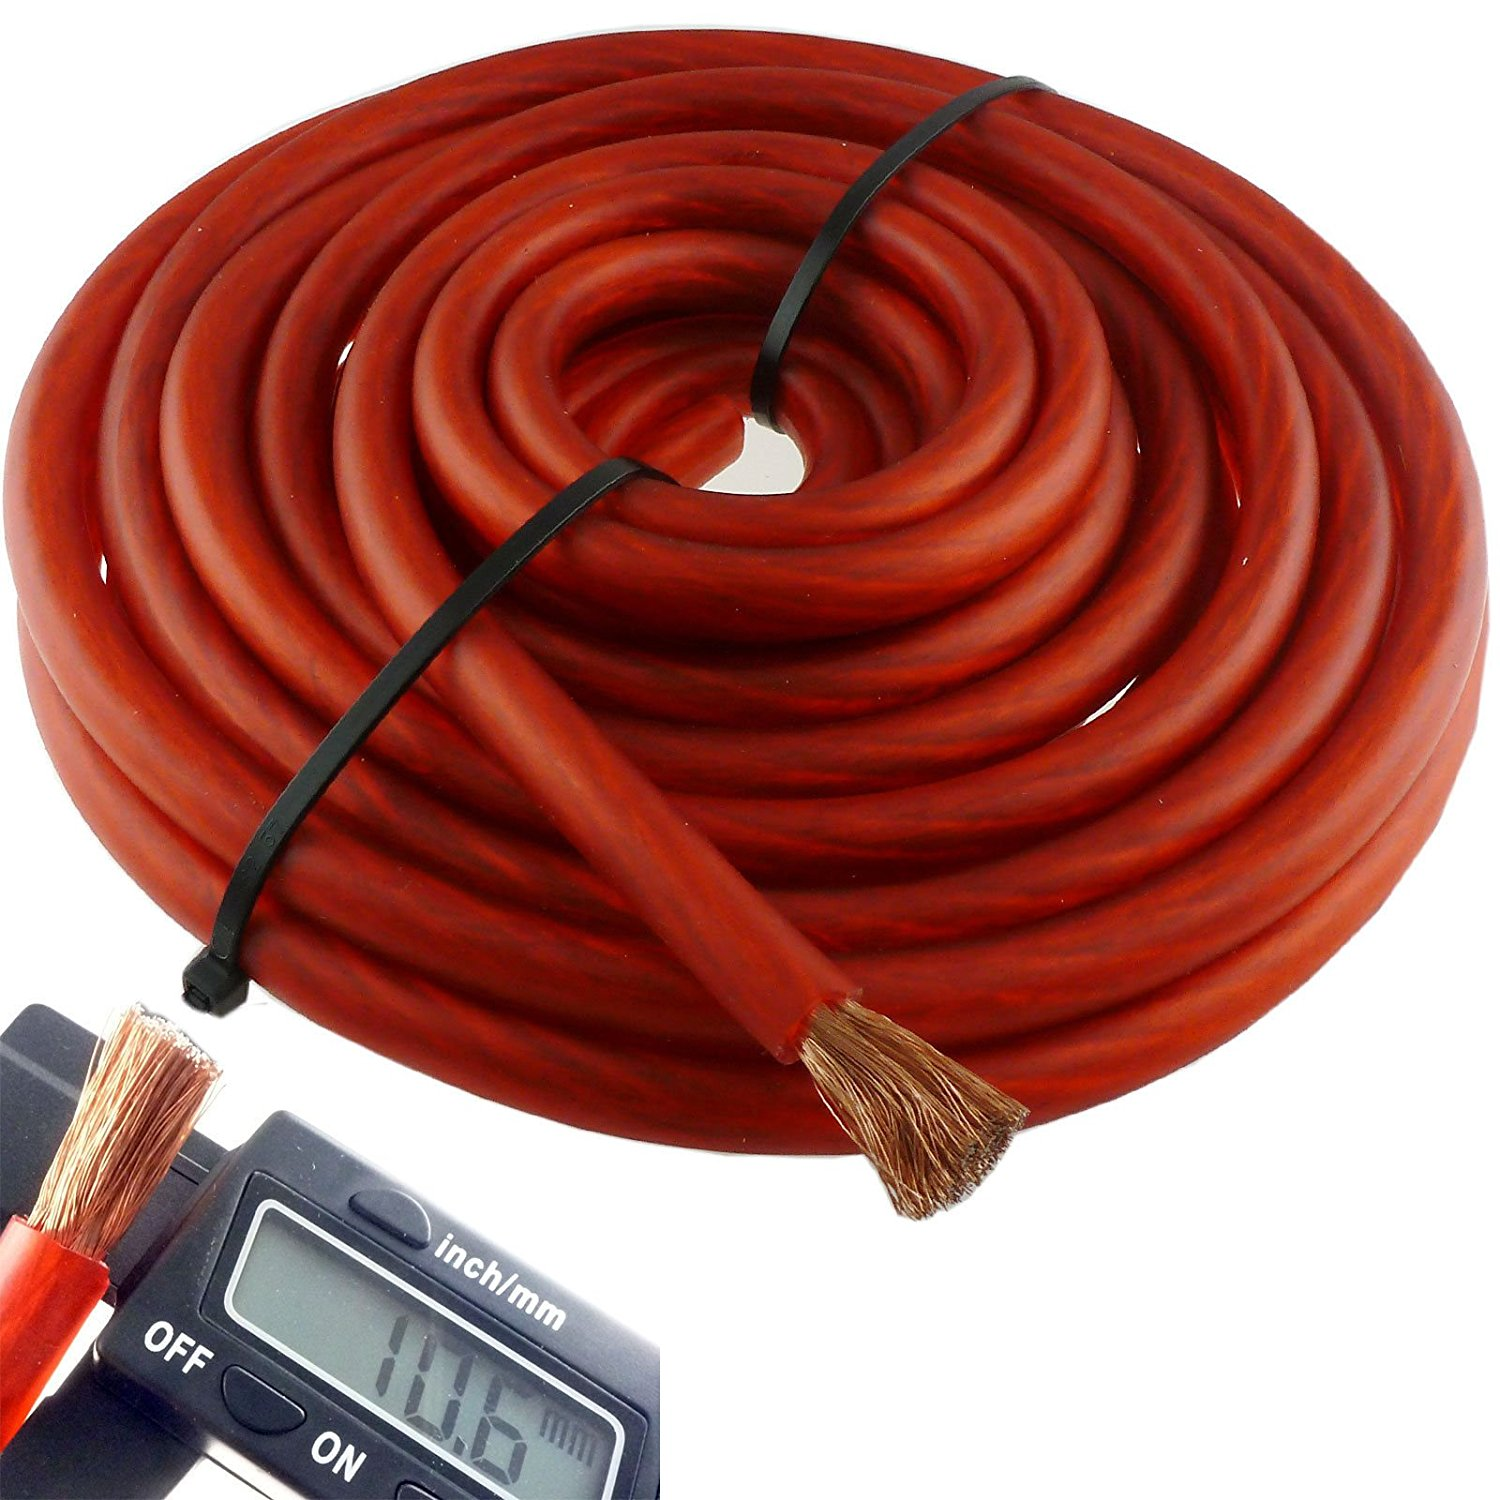 Hyperflex 10' ft 4 Gauge Red Car Audio Power Ground Wire Cable AWG 10 Feet Fast